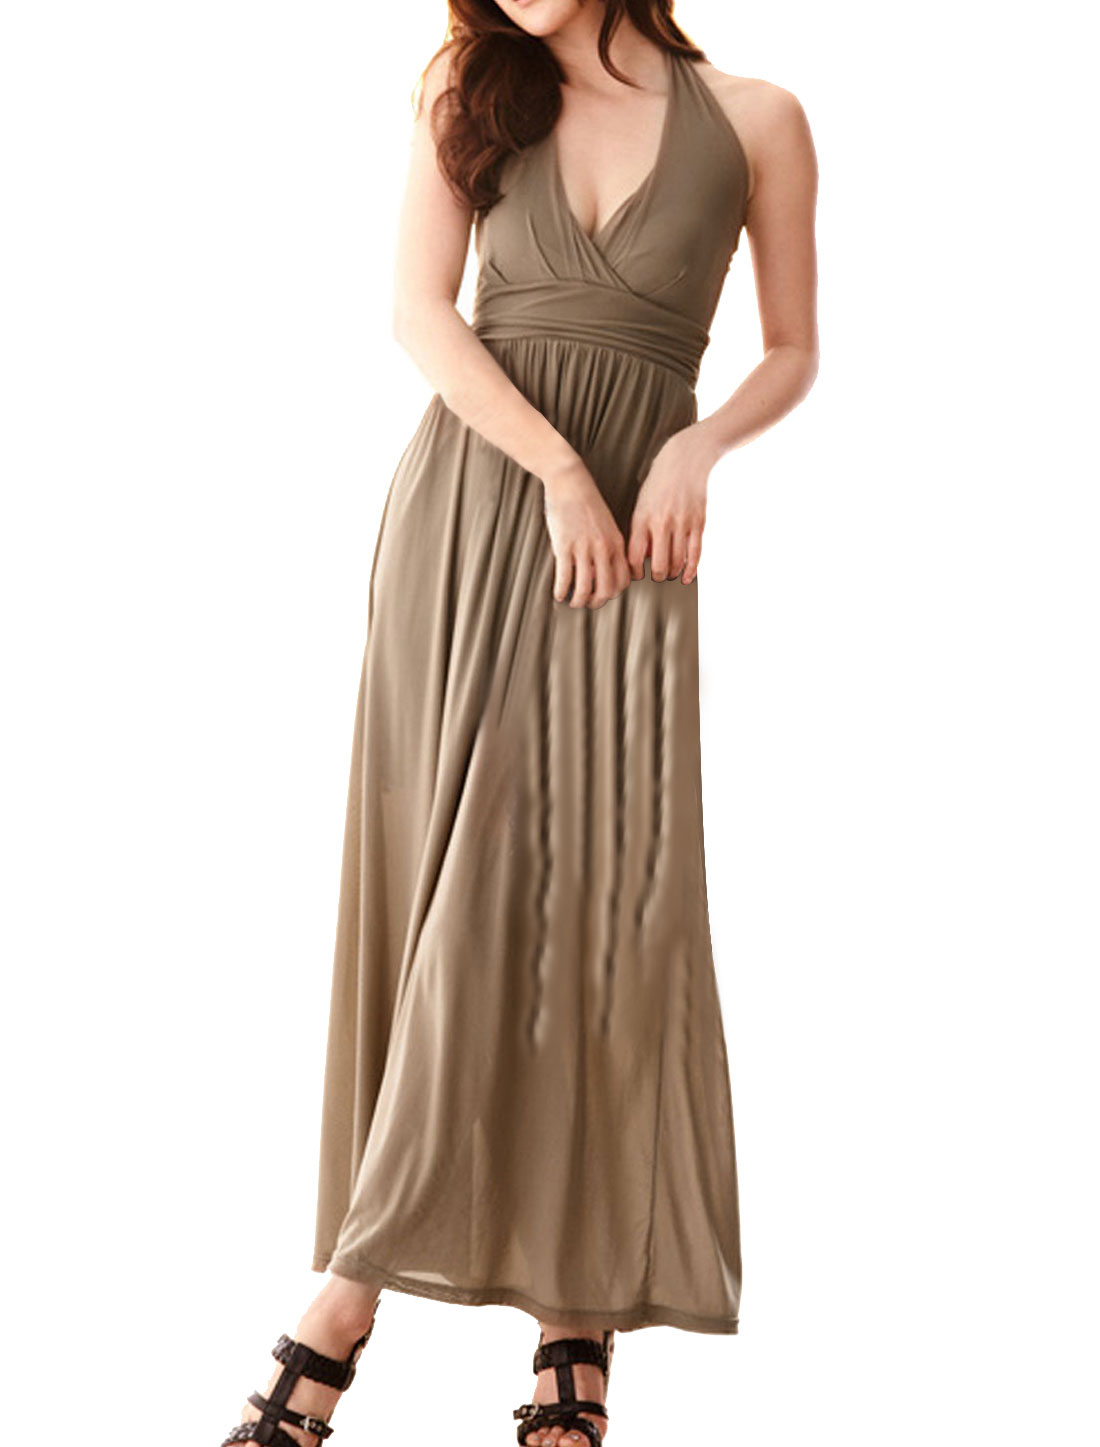 Ladies Sleevesless Sheath Waist Elastic Empire Halter Dress Khaki XS